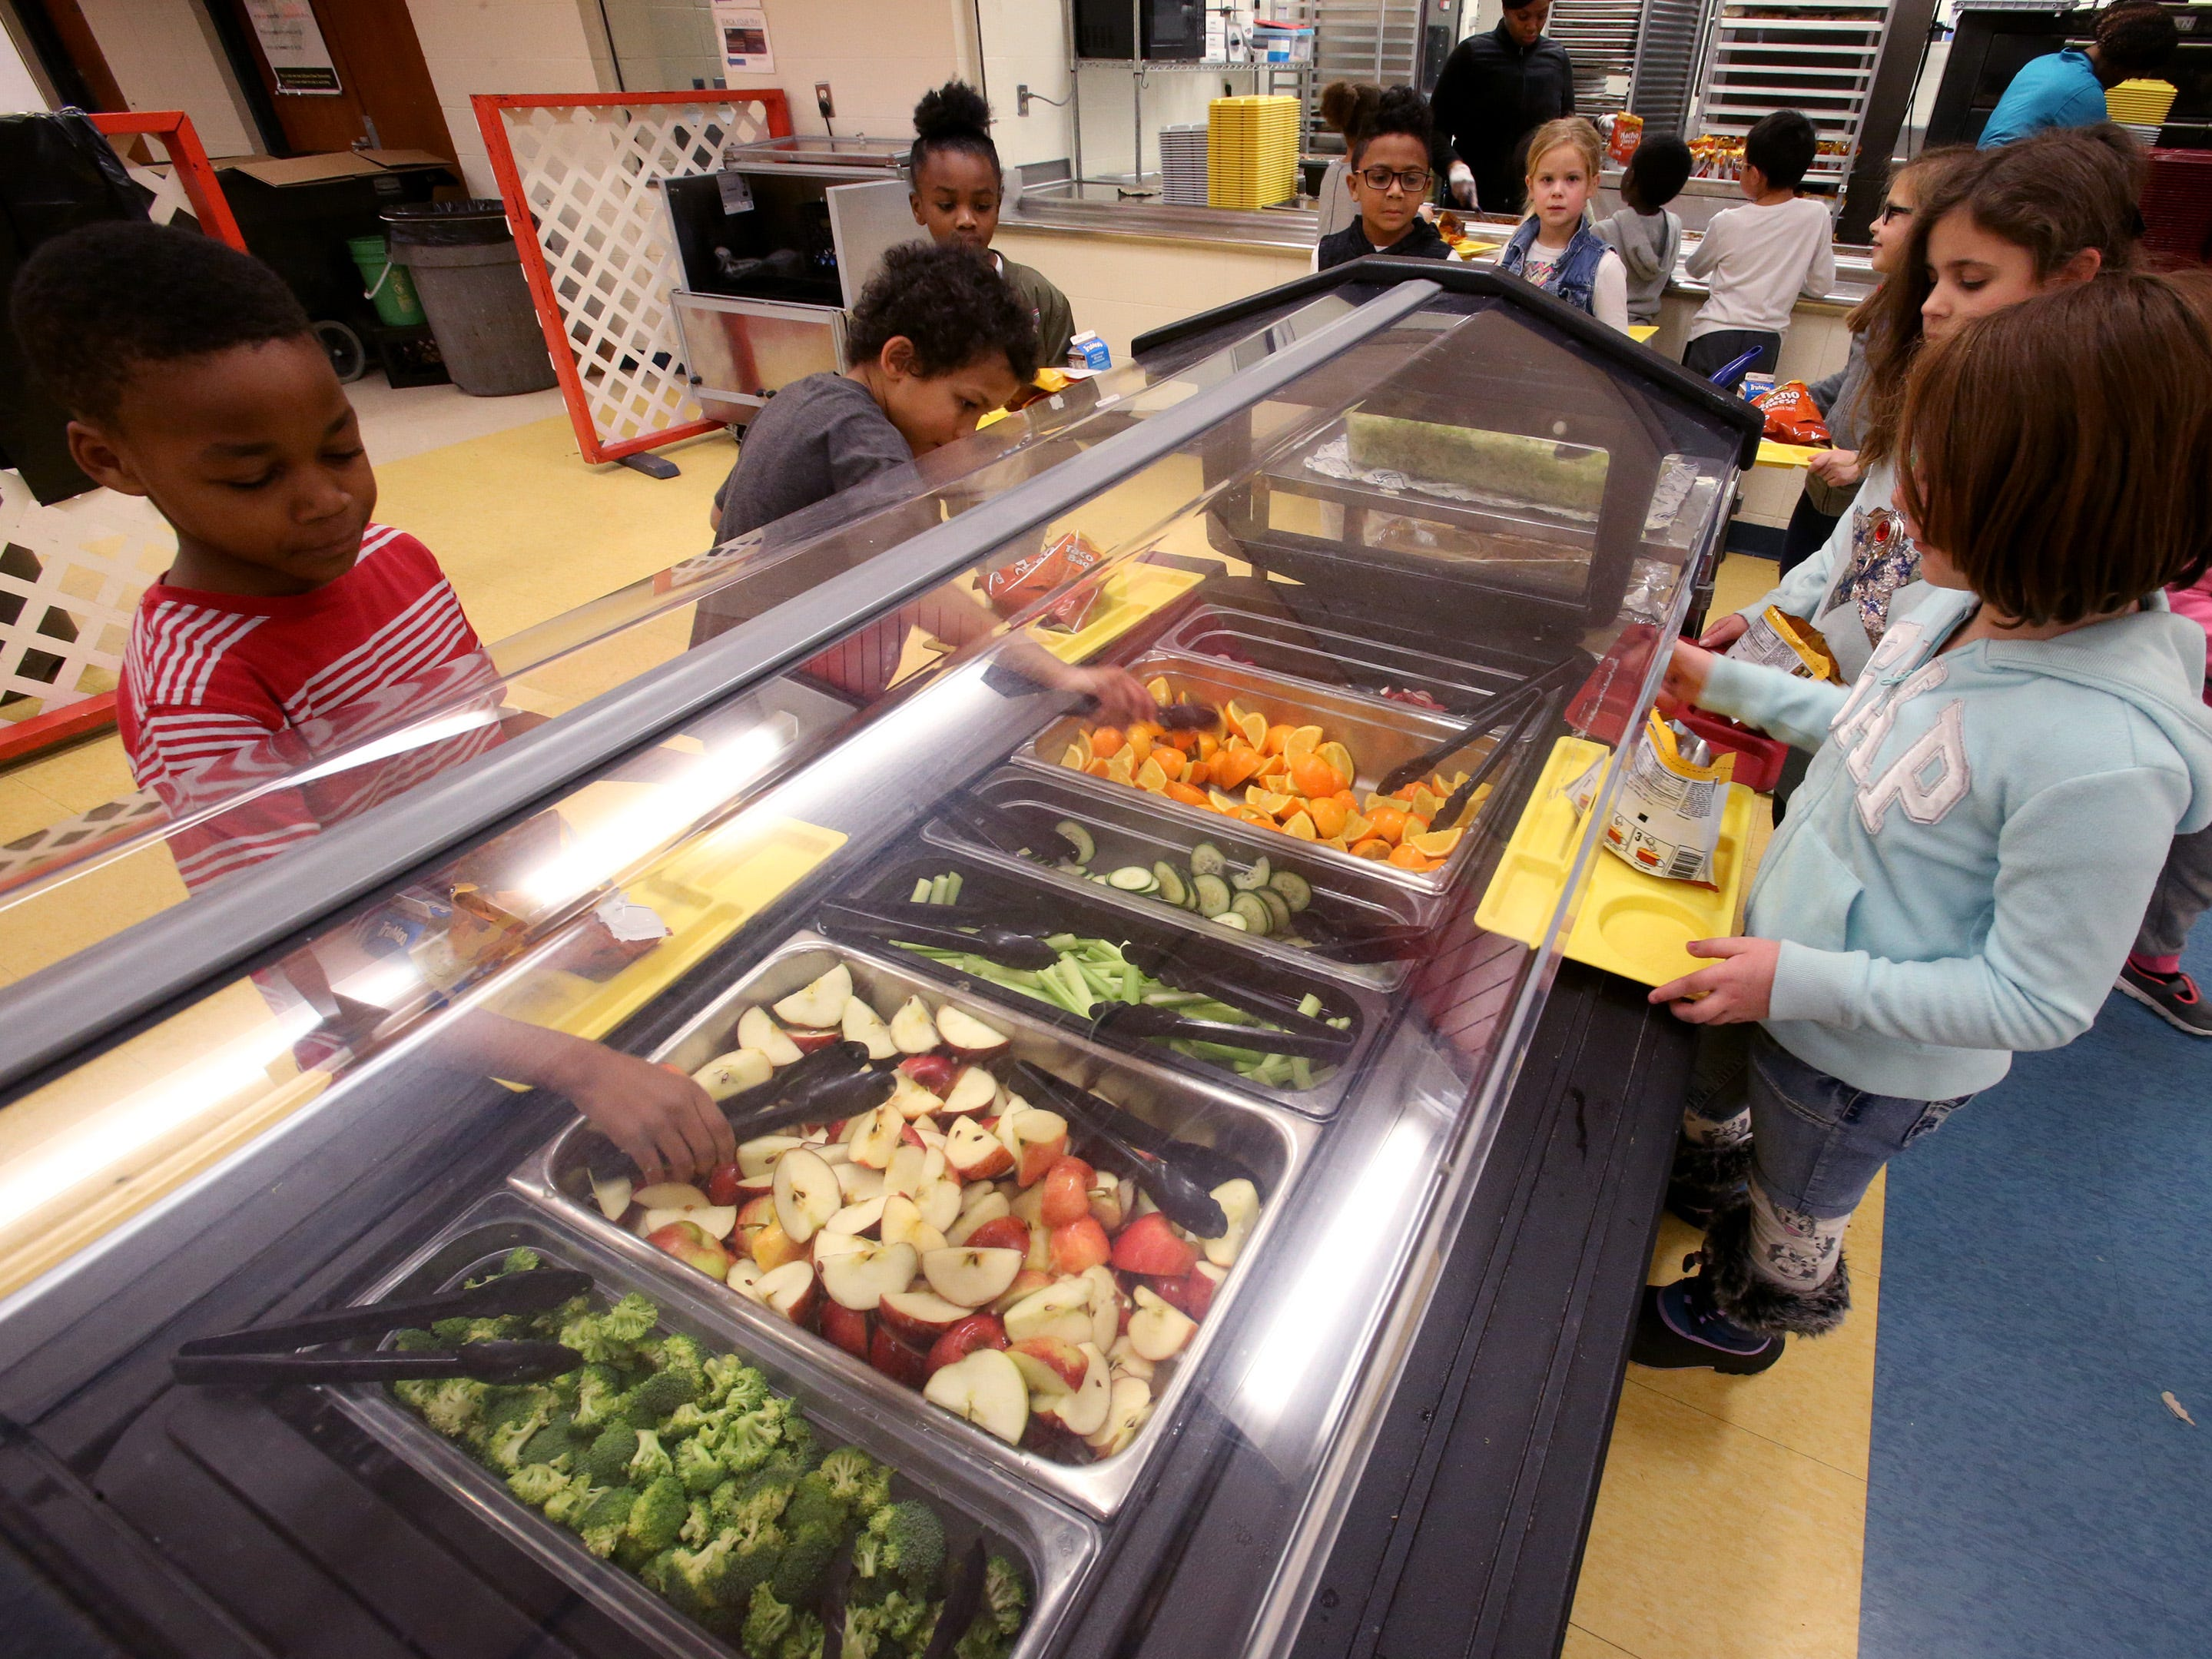 Brown Deer Elementary second grade students selects fruits and vegetables to go with their entree choice of a walking taco or a chicken salad on Nov. 29.